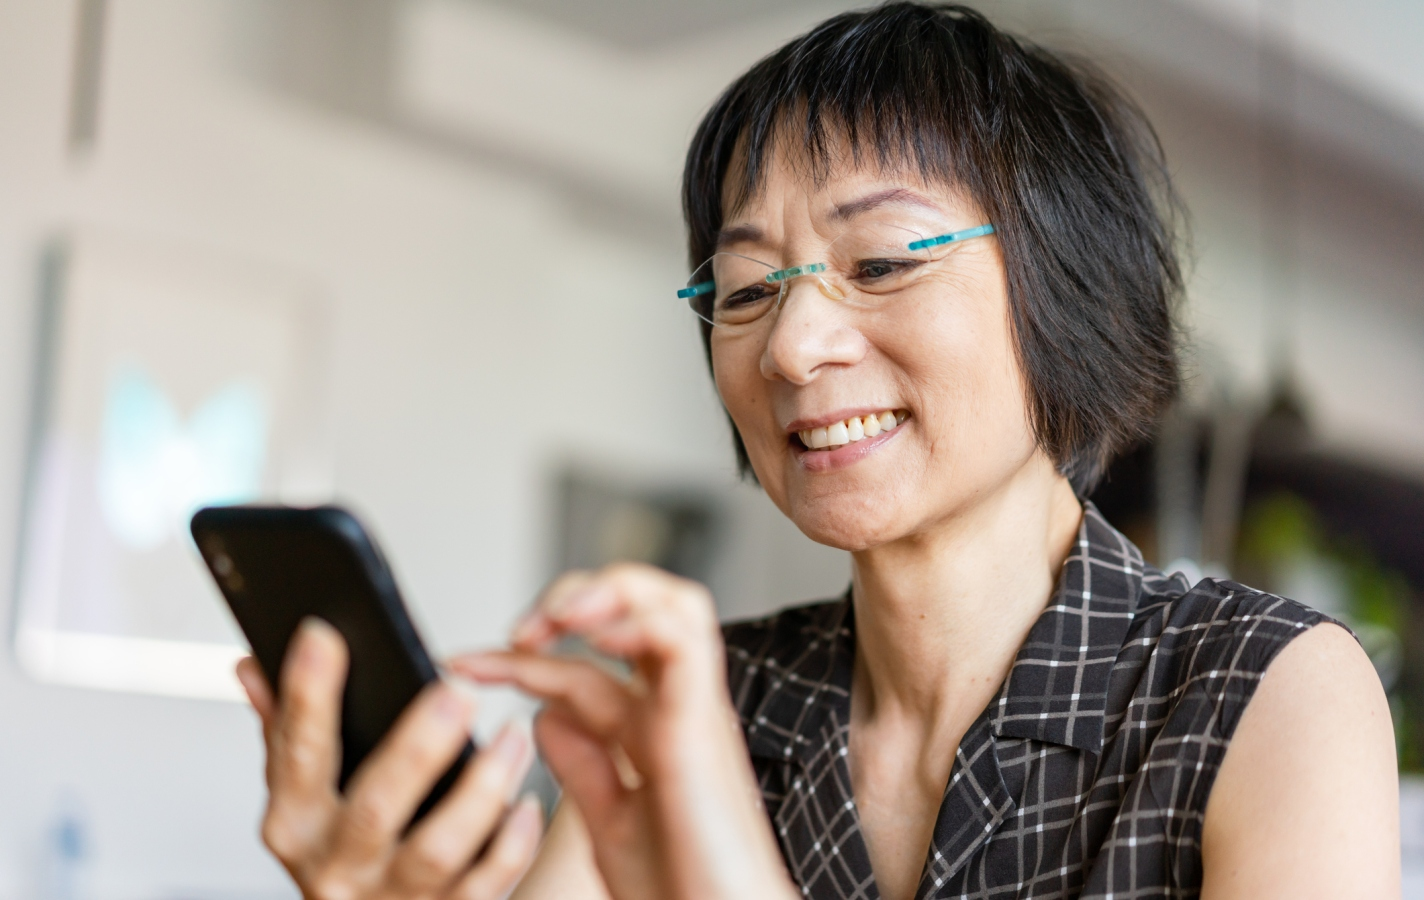 Senior Asian woman using a smartphone